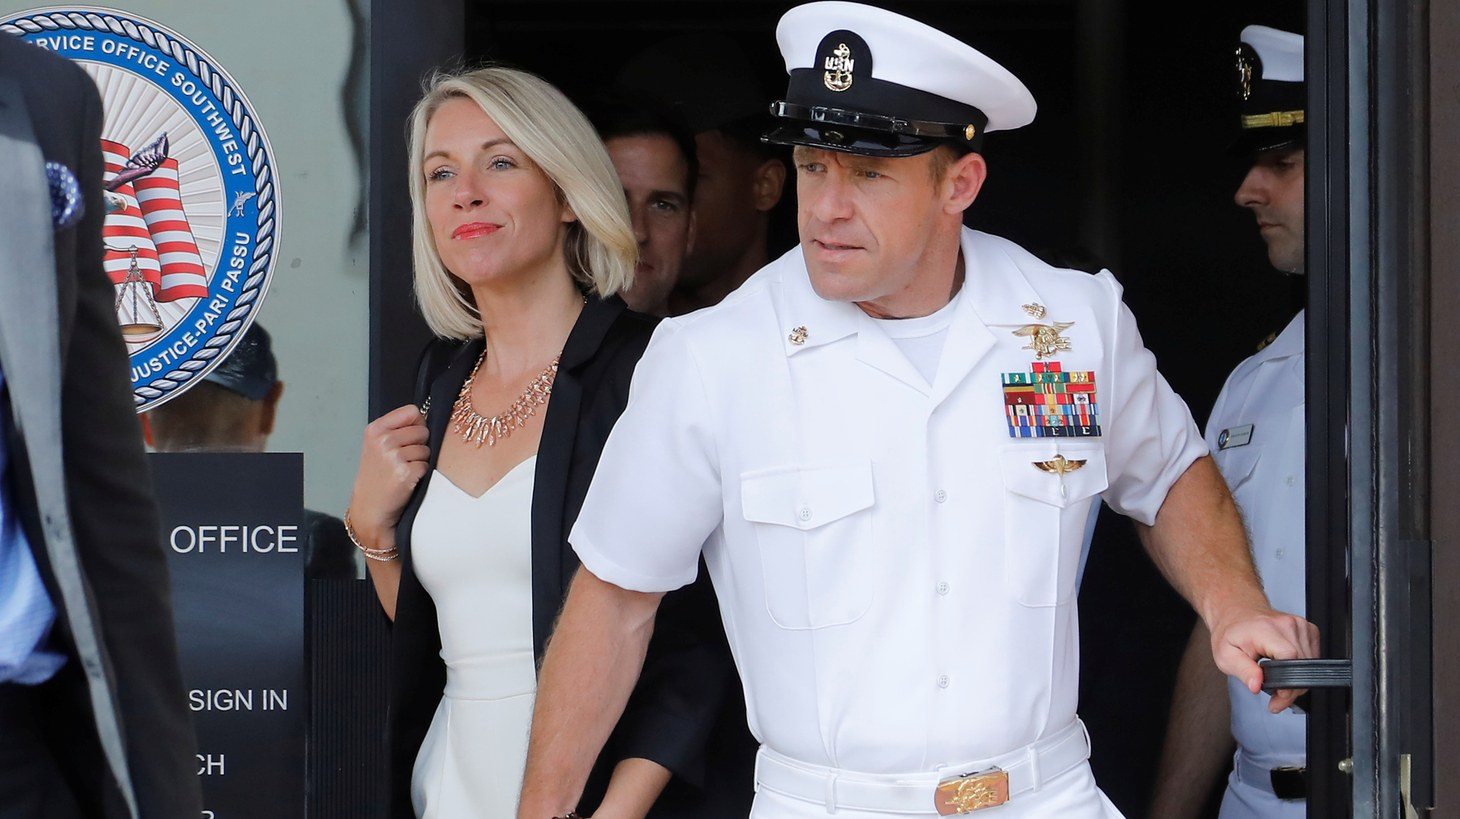 U.S. Navy SEAL Special Operations Chief Edward Gallagher (R), with wife Andrea Gallagher, leaves court after being acquitted of most of the serious charges against him during his court-martial trial at Naval Base San Diego in San Diego, California , U.S., July 2, 2019.